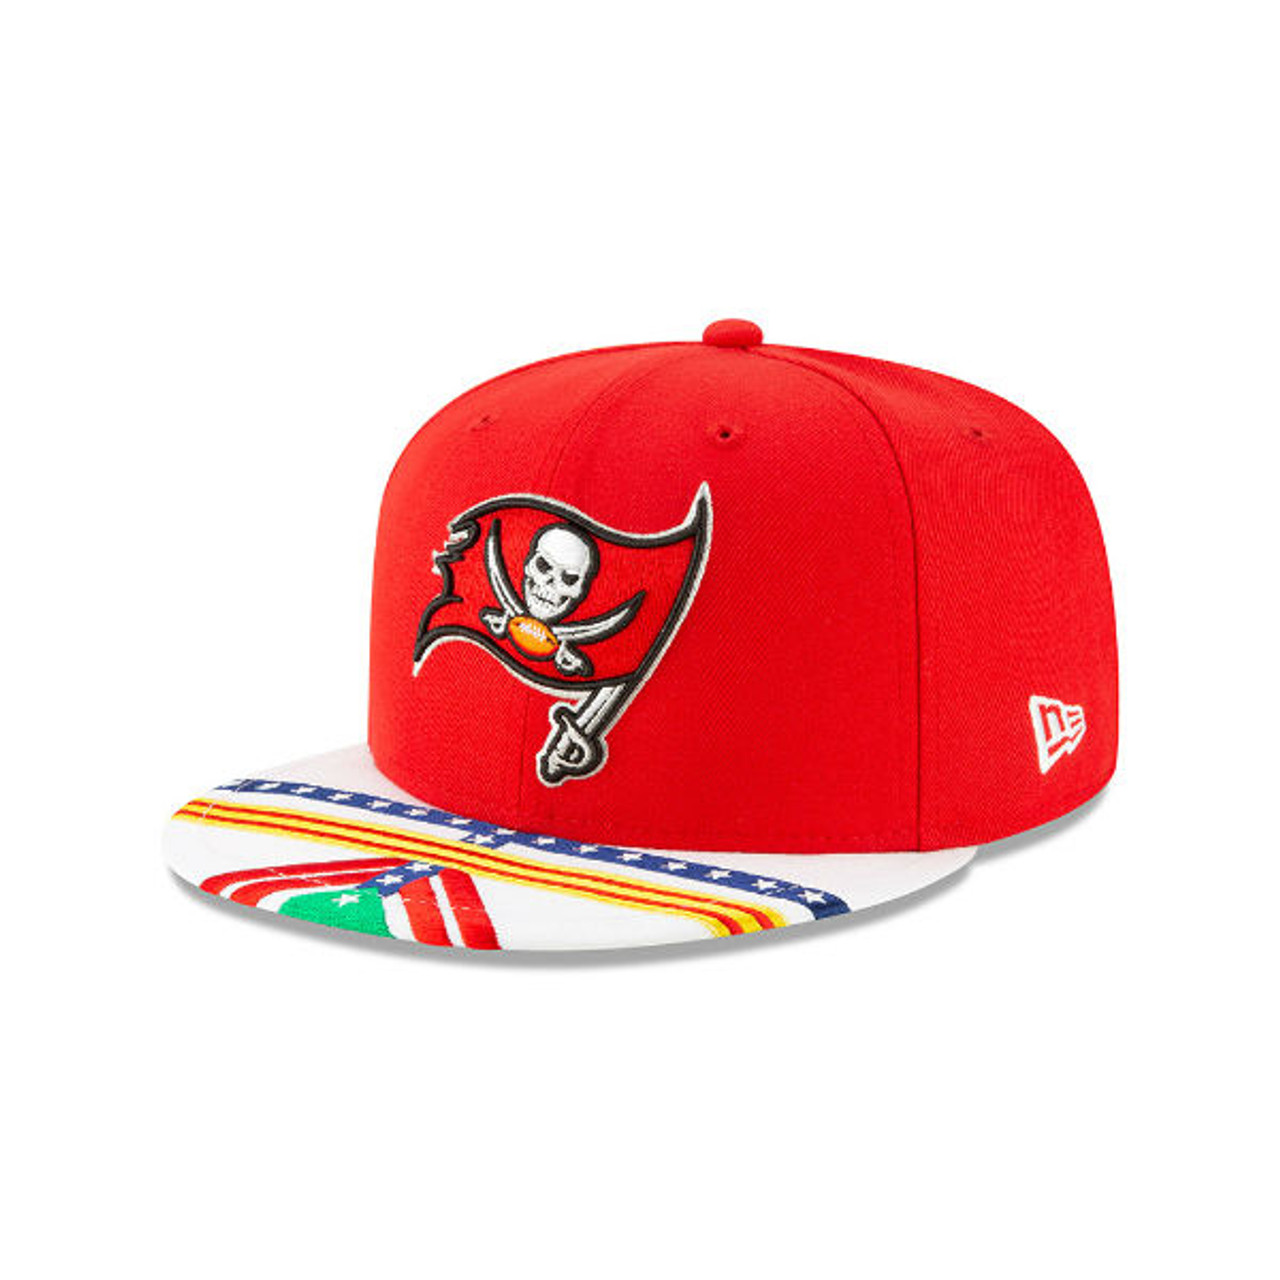 5f962a24e8810c Men's Tampa Bay Buccaneers New Era 2019 NFL Draft On Stage Official 9Fifty  Hat - Tampa Bay Sports